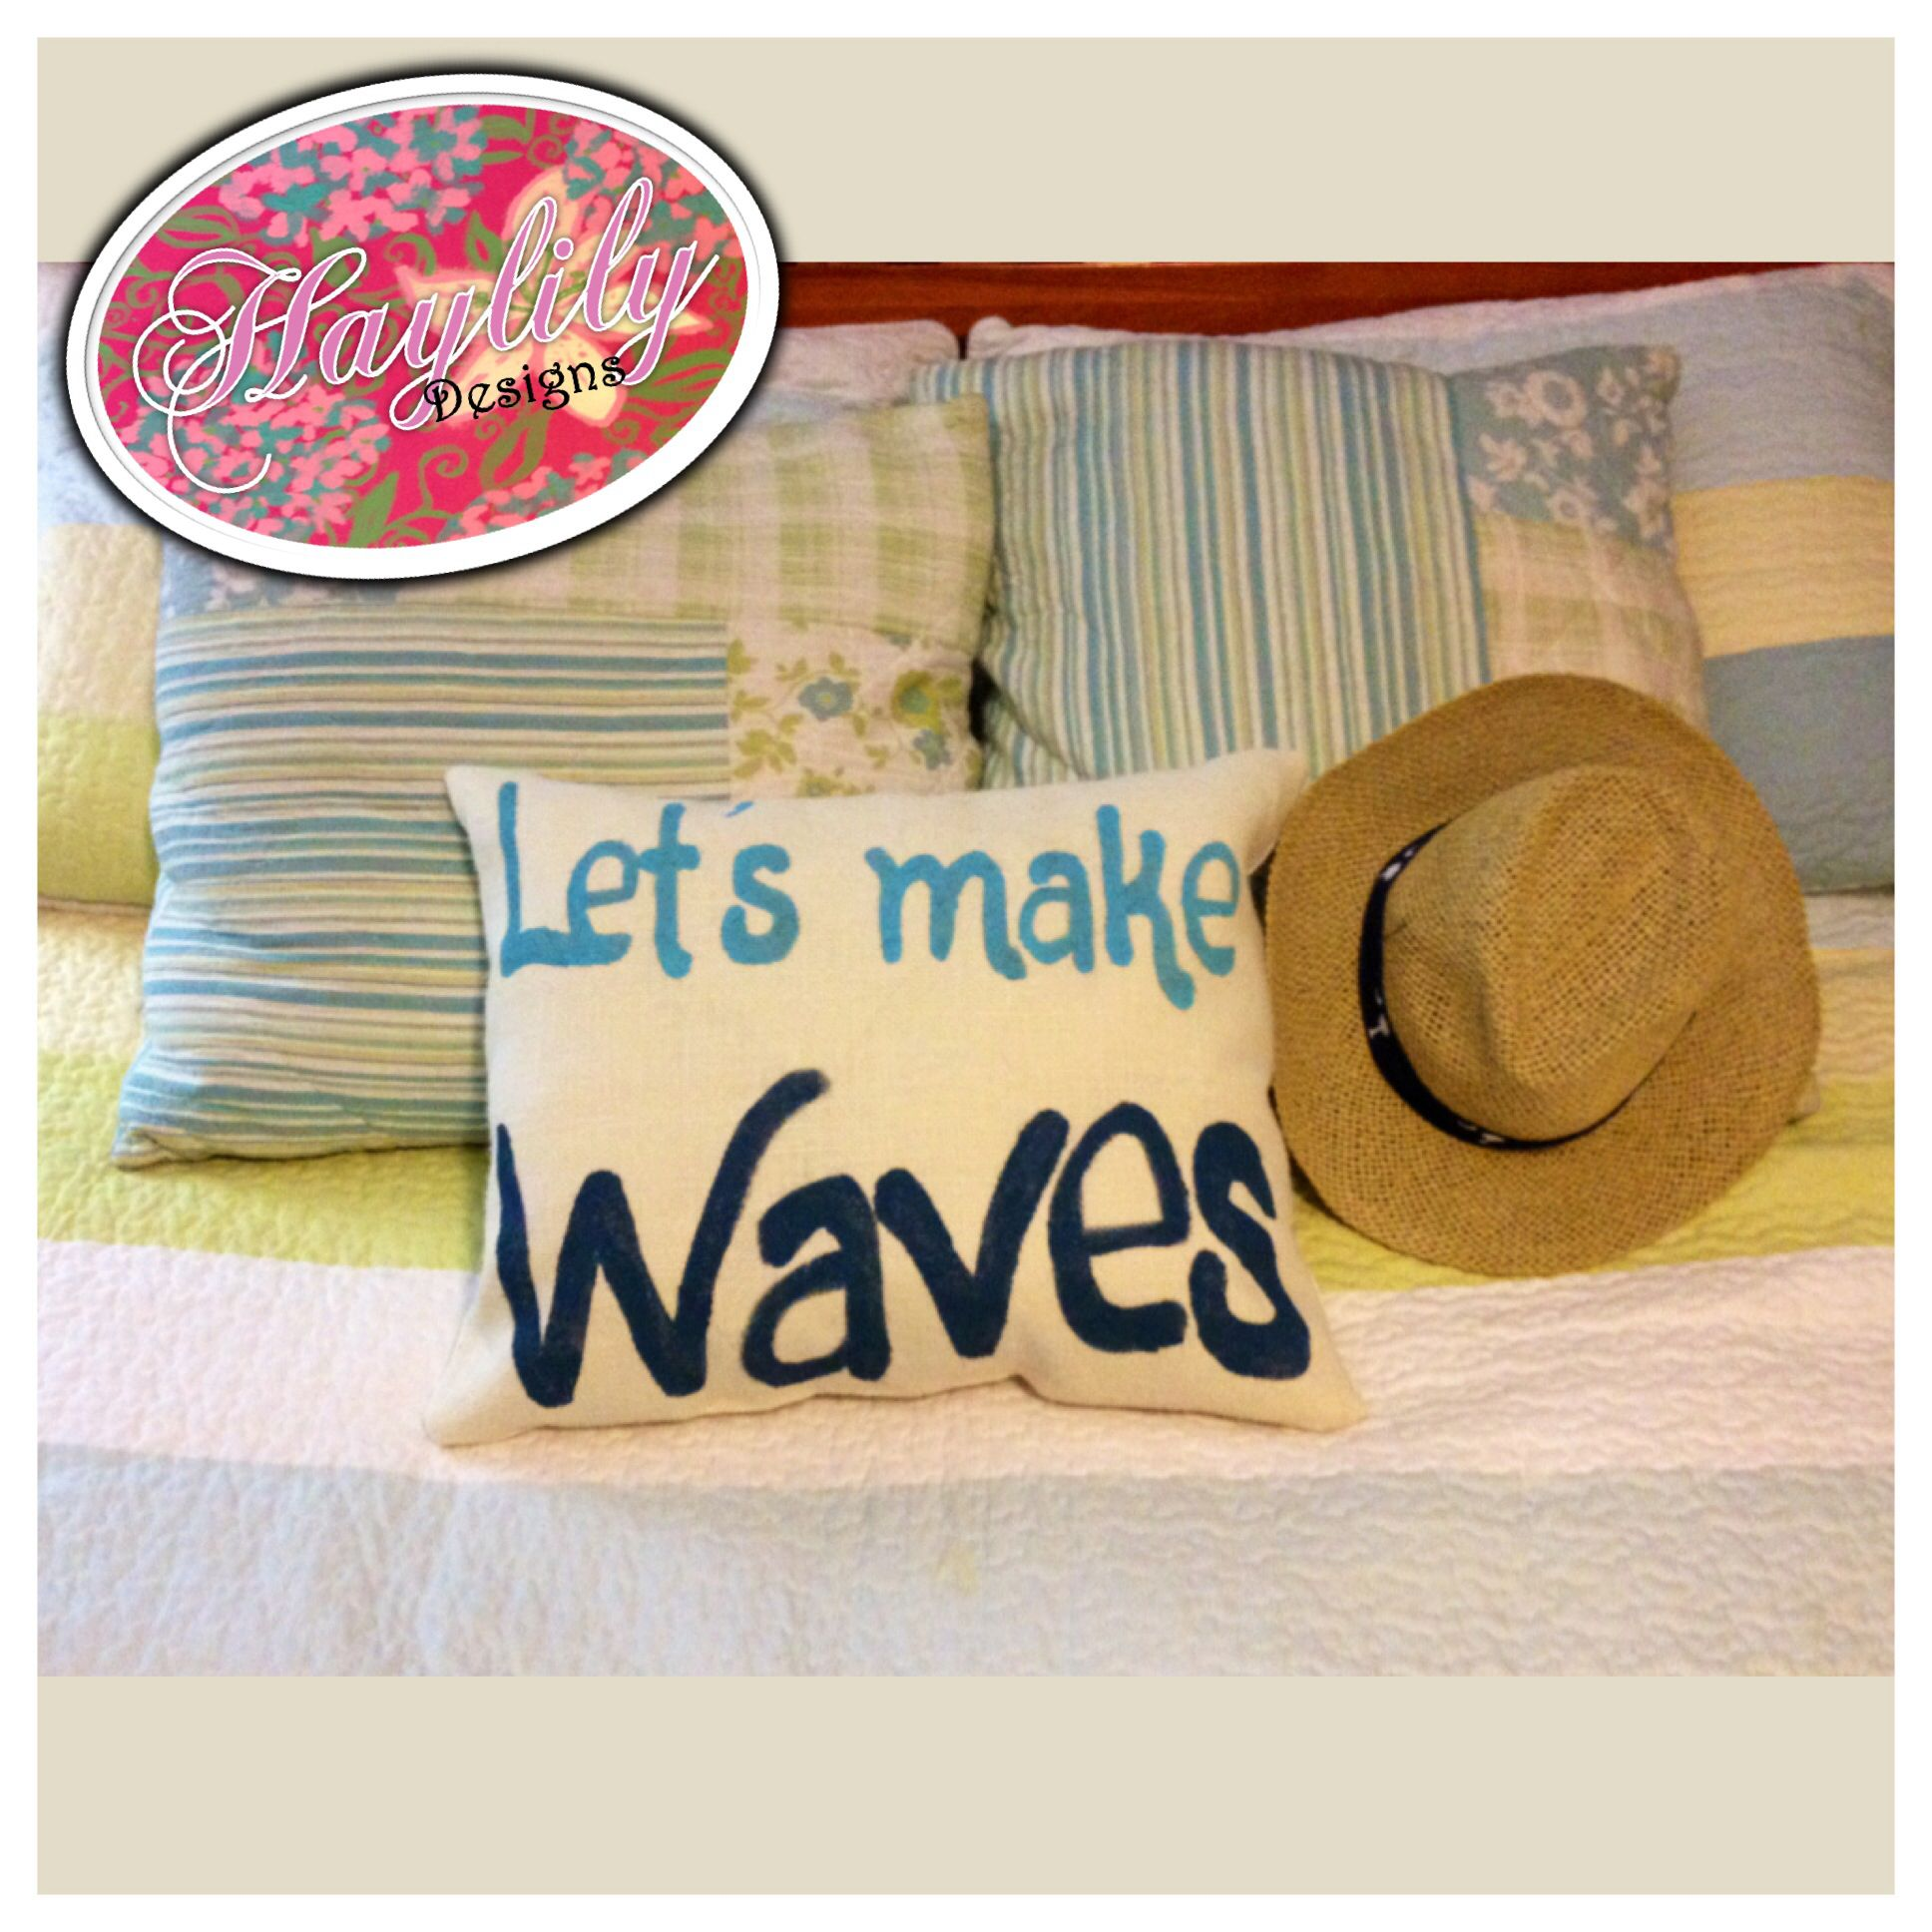 Let's Make Waves #beach inspired painted  #burlap #pillow #HaylilyDesigns